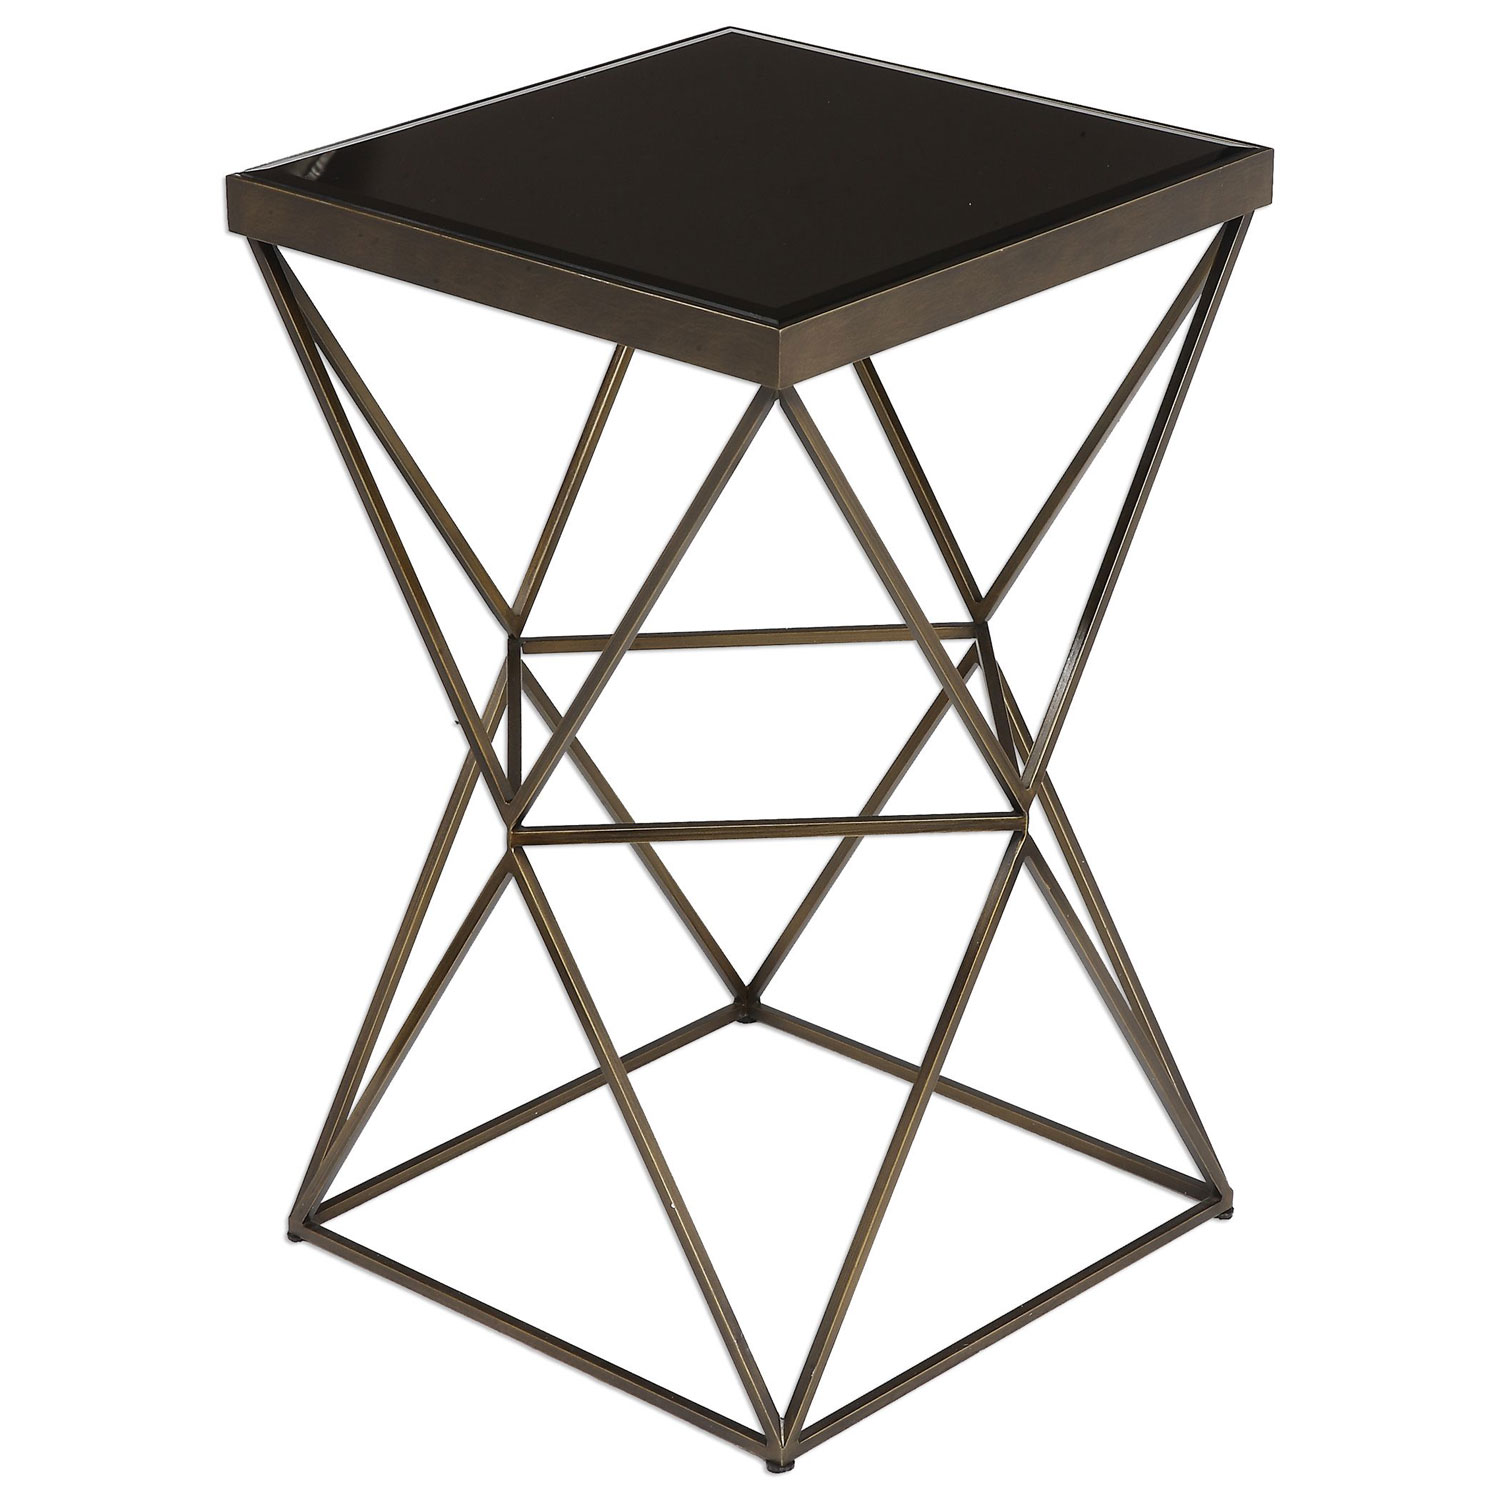 uttermost uberto antique bronze accent table bellacor hover zoom black kitchen chairs asian lamps target kids contemporary wood side tables pipe coffee farmhouse style round dark